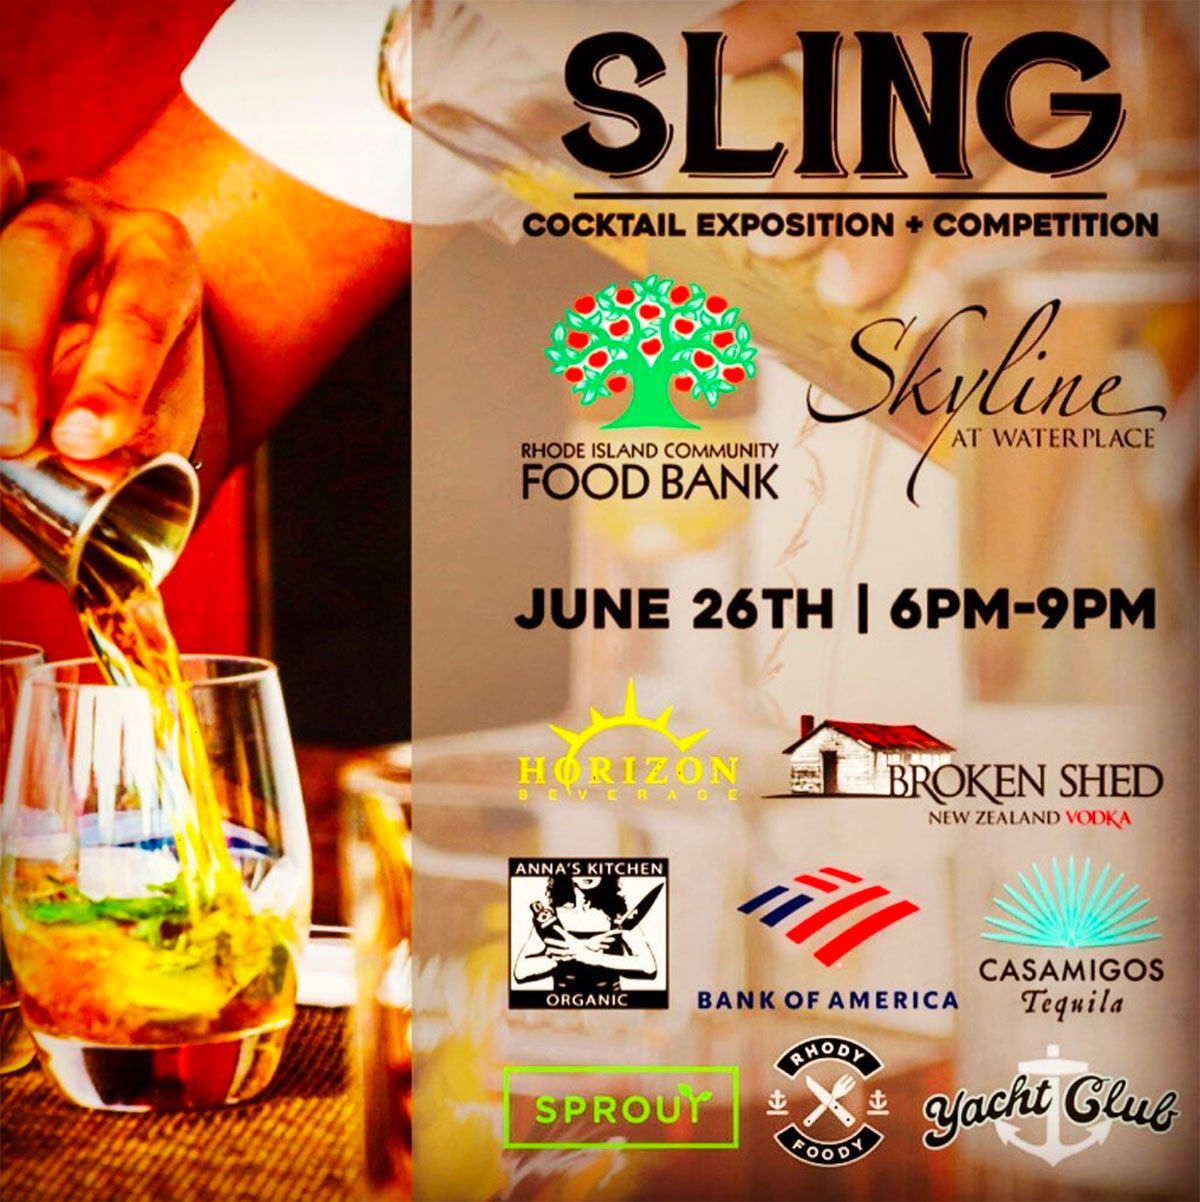 Sling Cocktail Competition Puts Local Bartenders to the Test